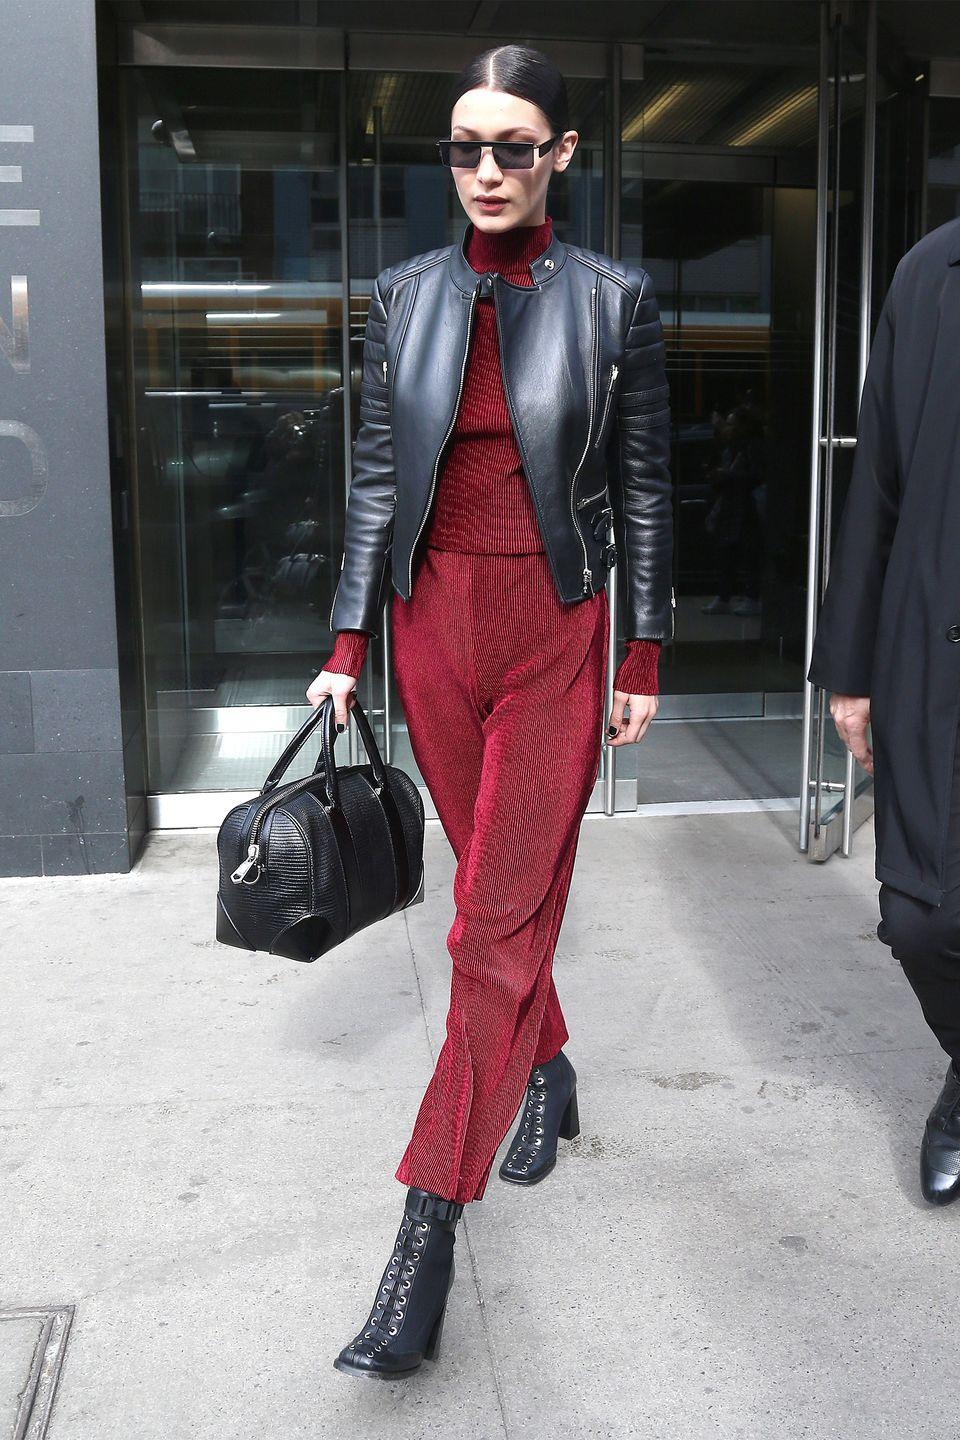 <p>In ribbed burgundy turtleneck and trouser set with a leather moto jacket, Givenchy bag, and lace-up square-toe ankle boots while out in New York City. </p>